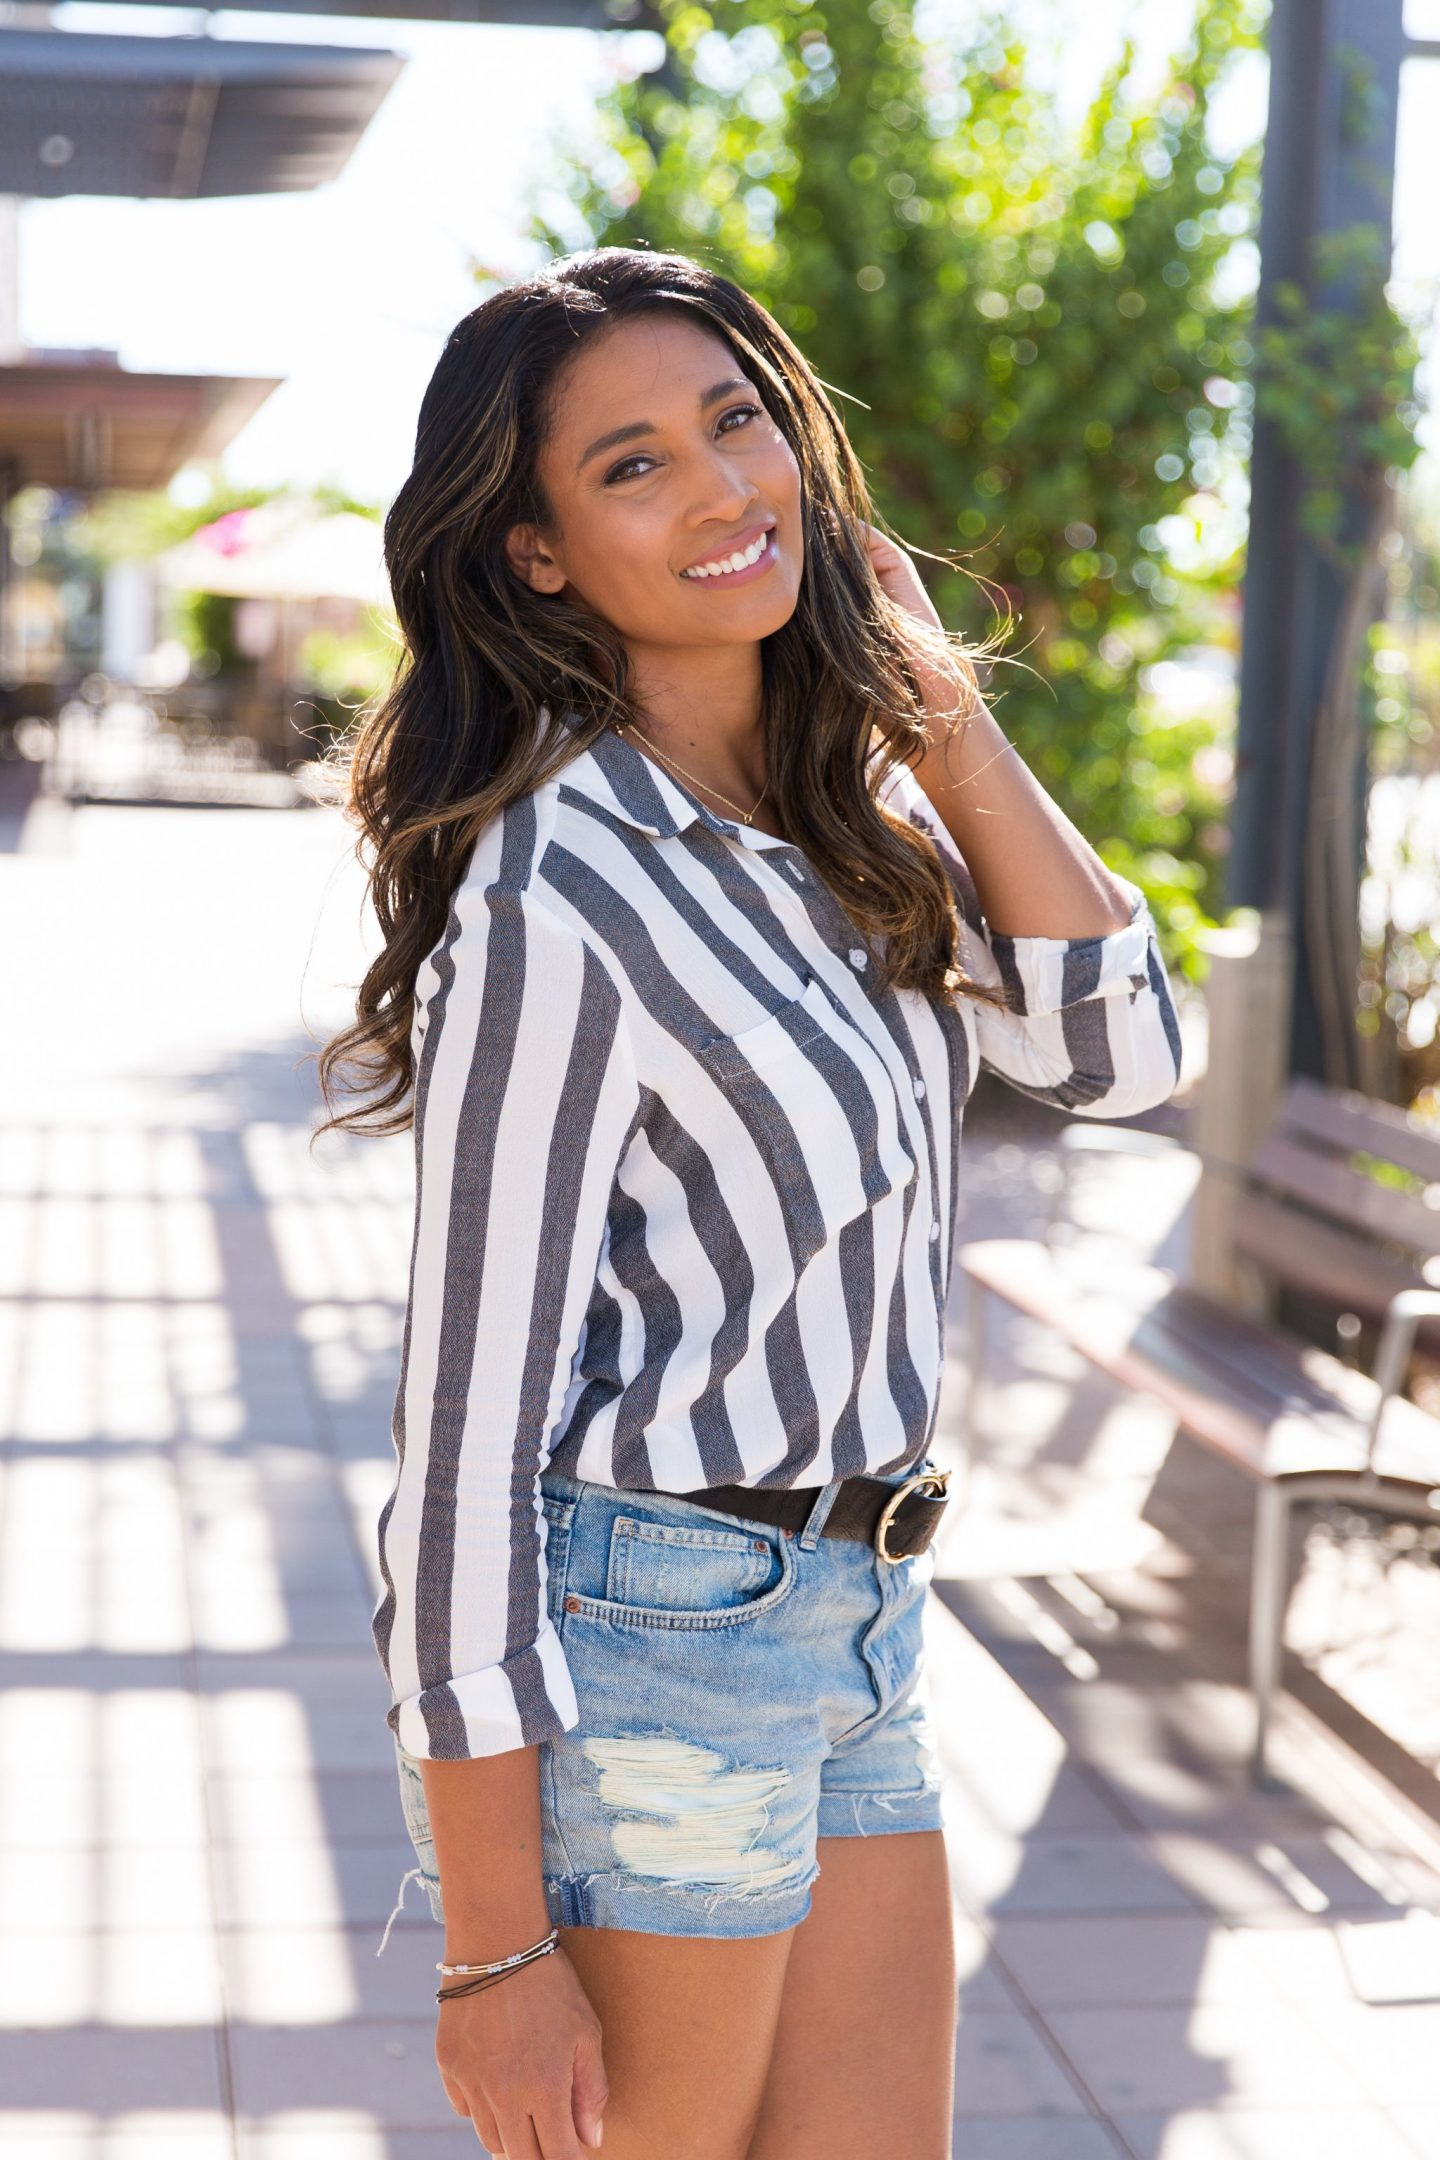 FALL OUTFIT, FALL SHIRT, WHAT TO WEAR, CUTE STRIPED SHIRT, FALL OUTFIT INSPO, CUTE FALL CLOTHES